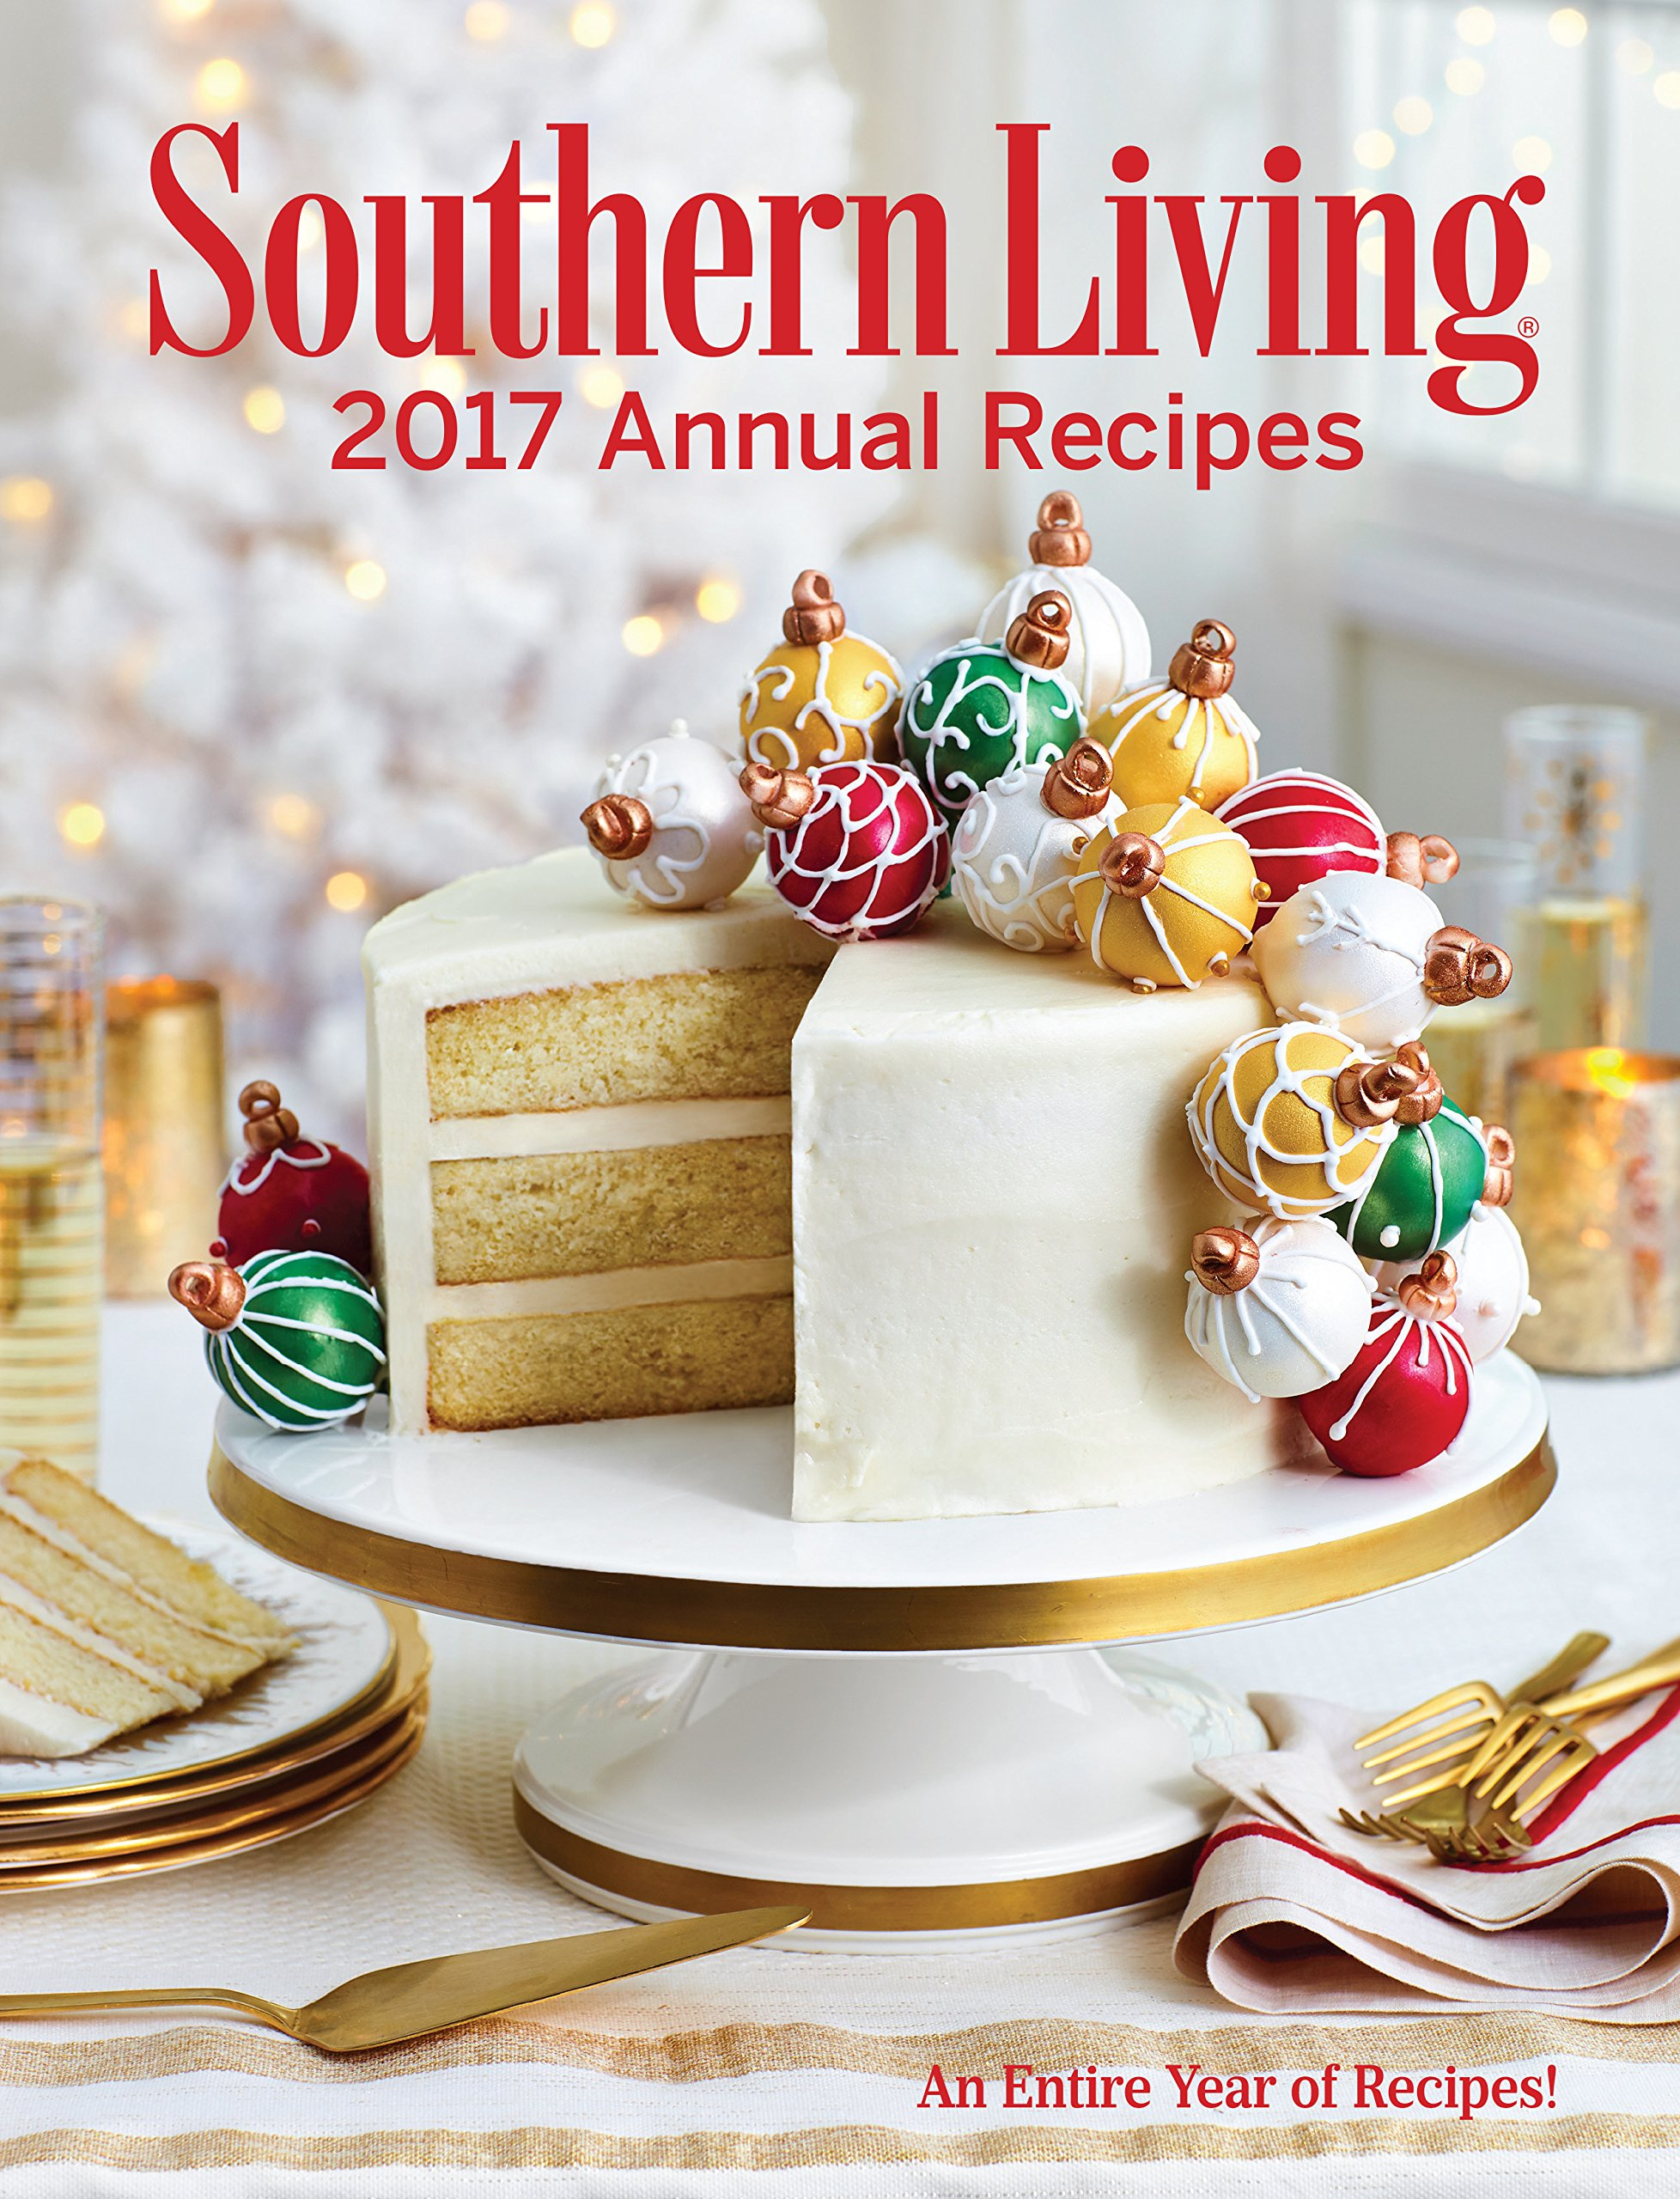 Southern Living Annual Recipes 2017: An Entire Year of Recipes by Southern Living